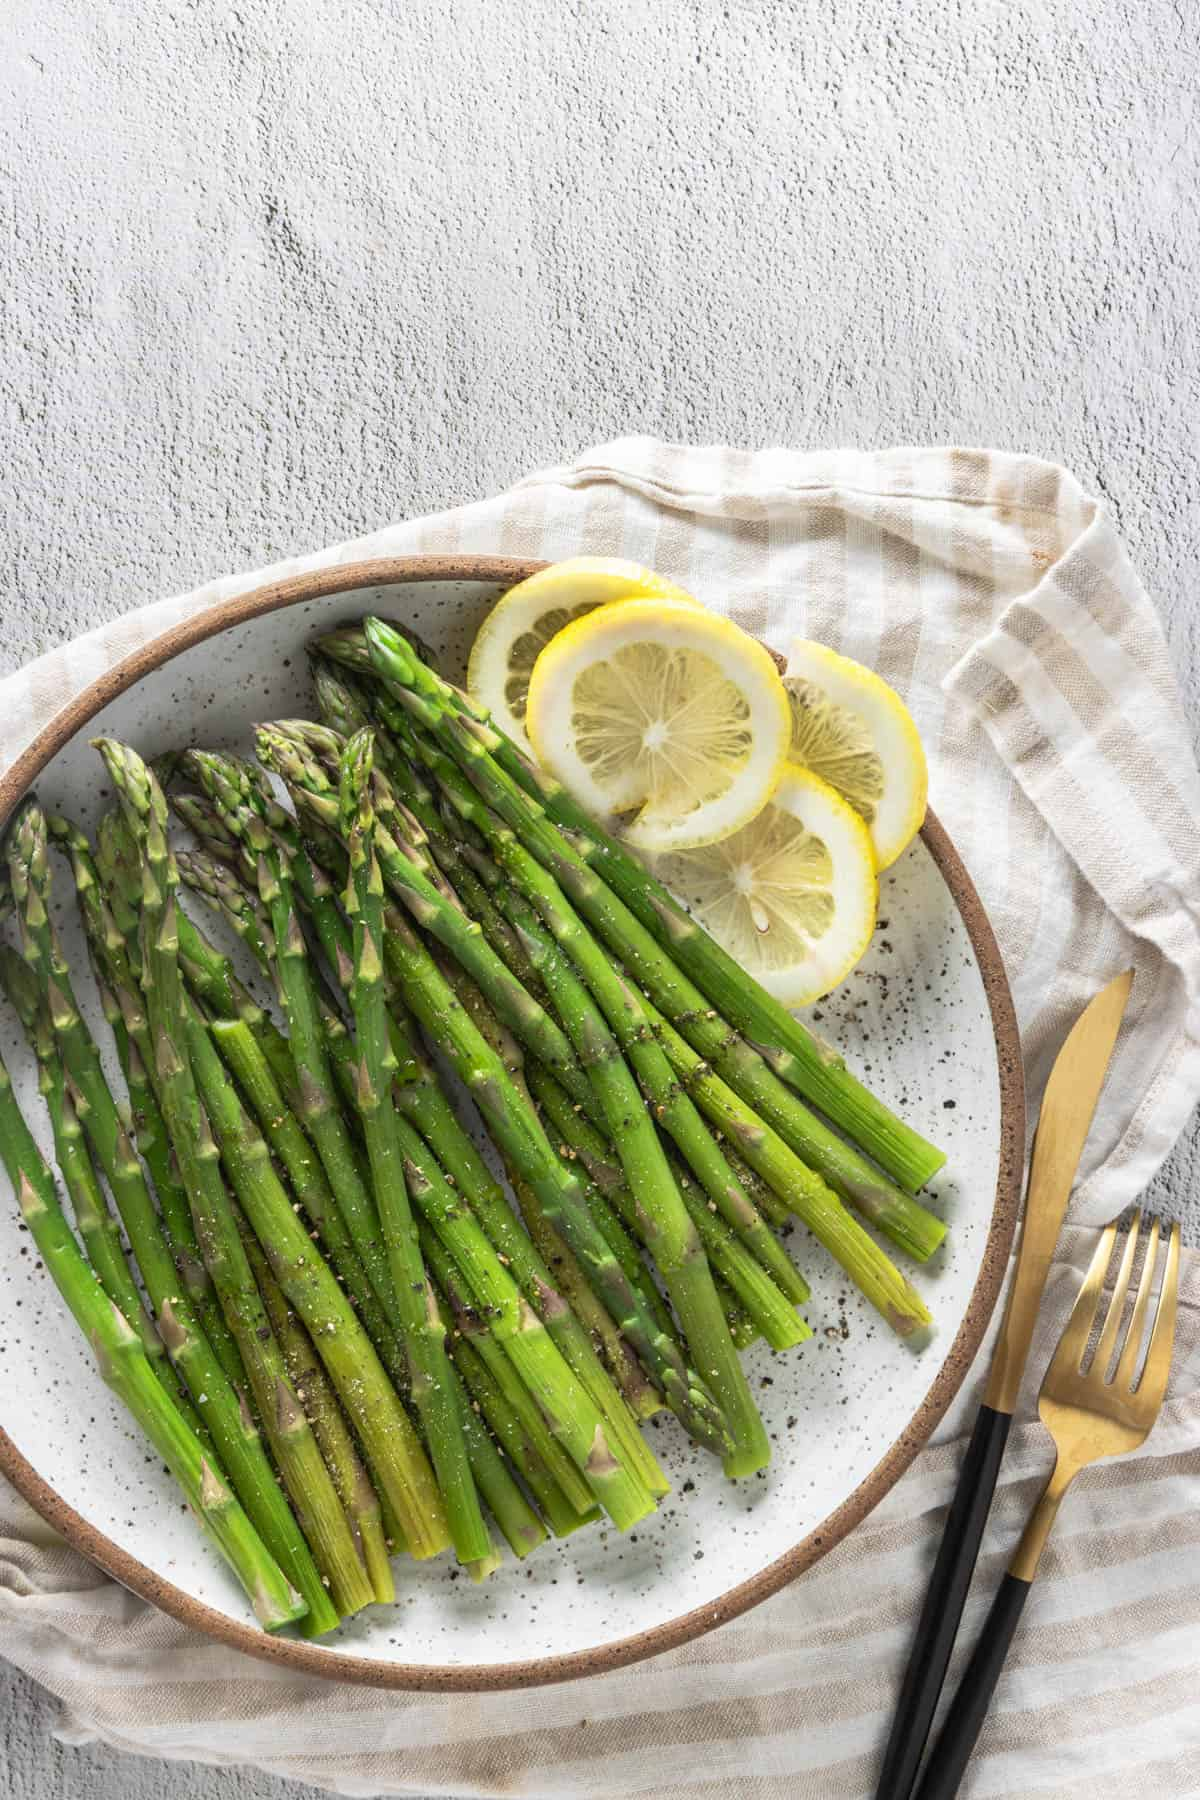 Cooked asparagus on a plate with some lemon slices for garnish